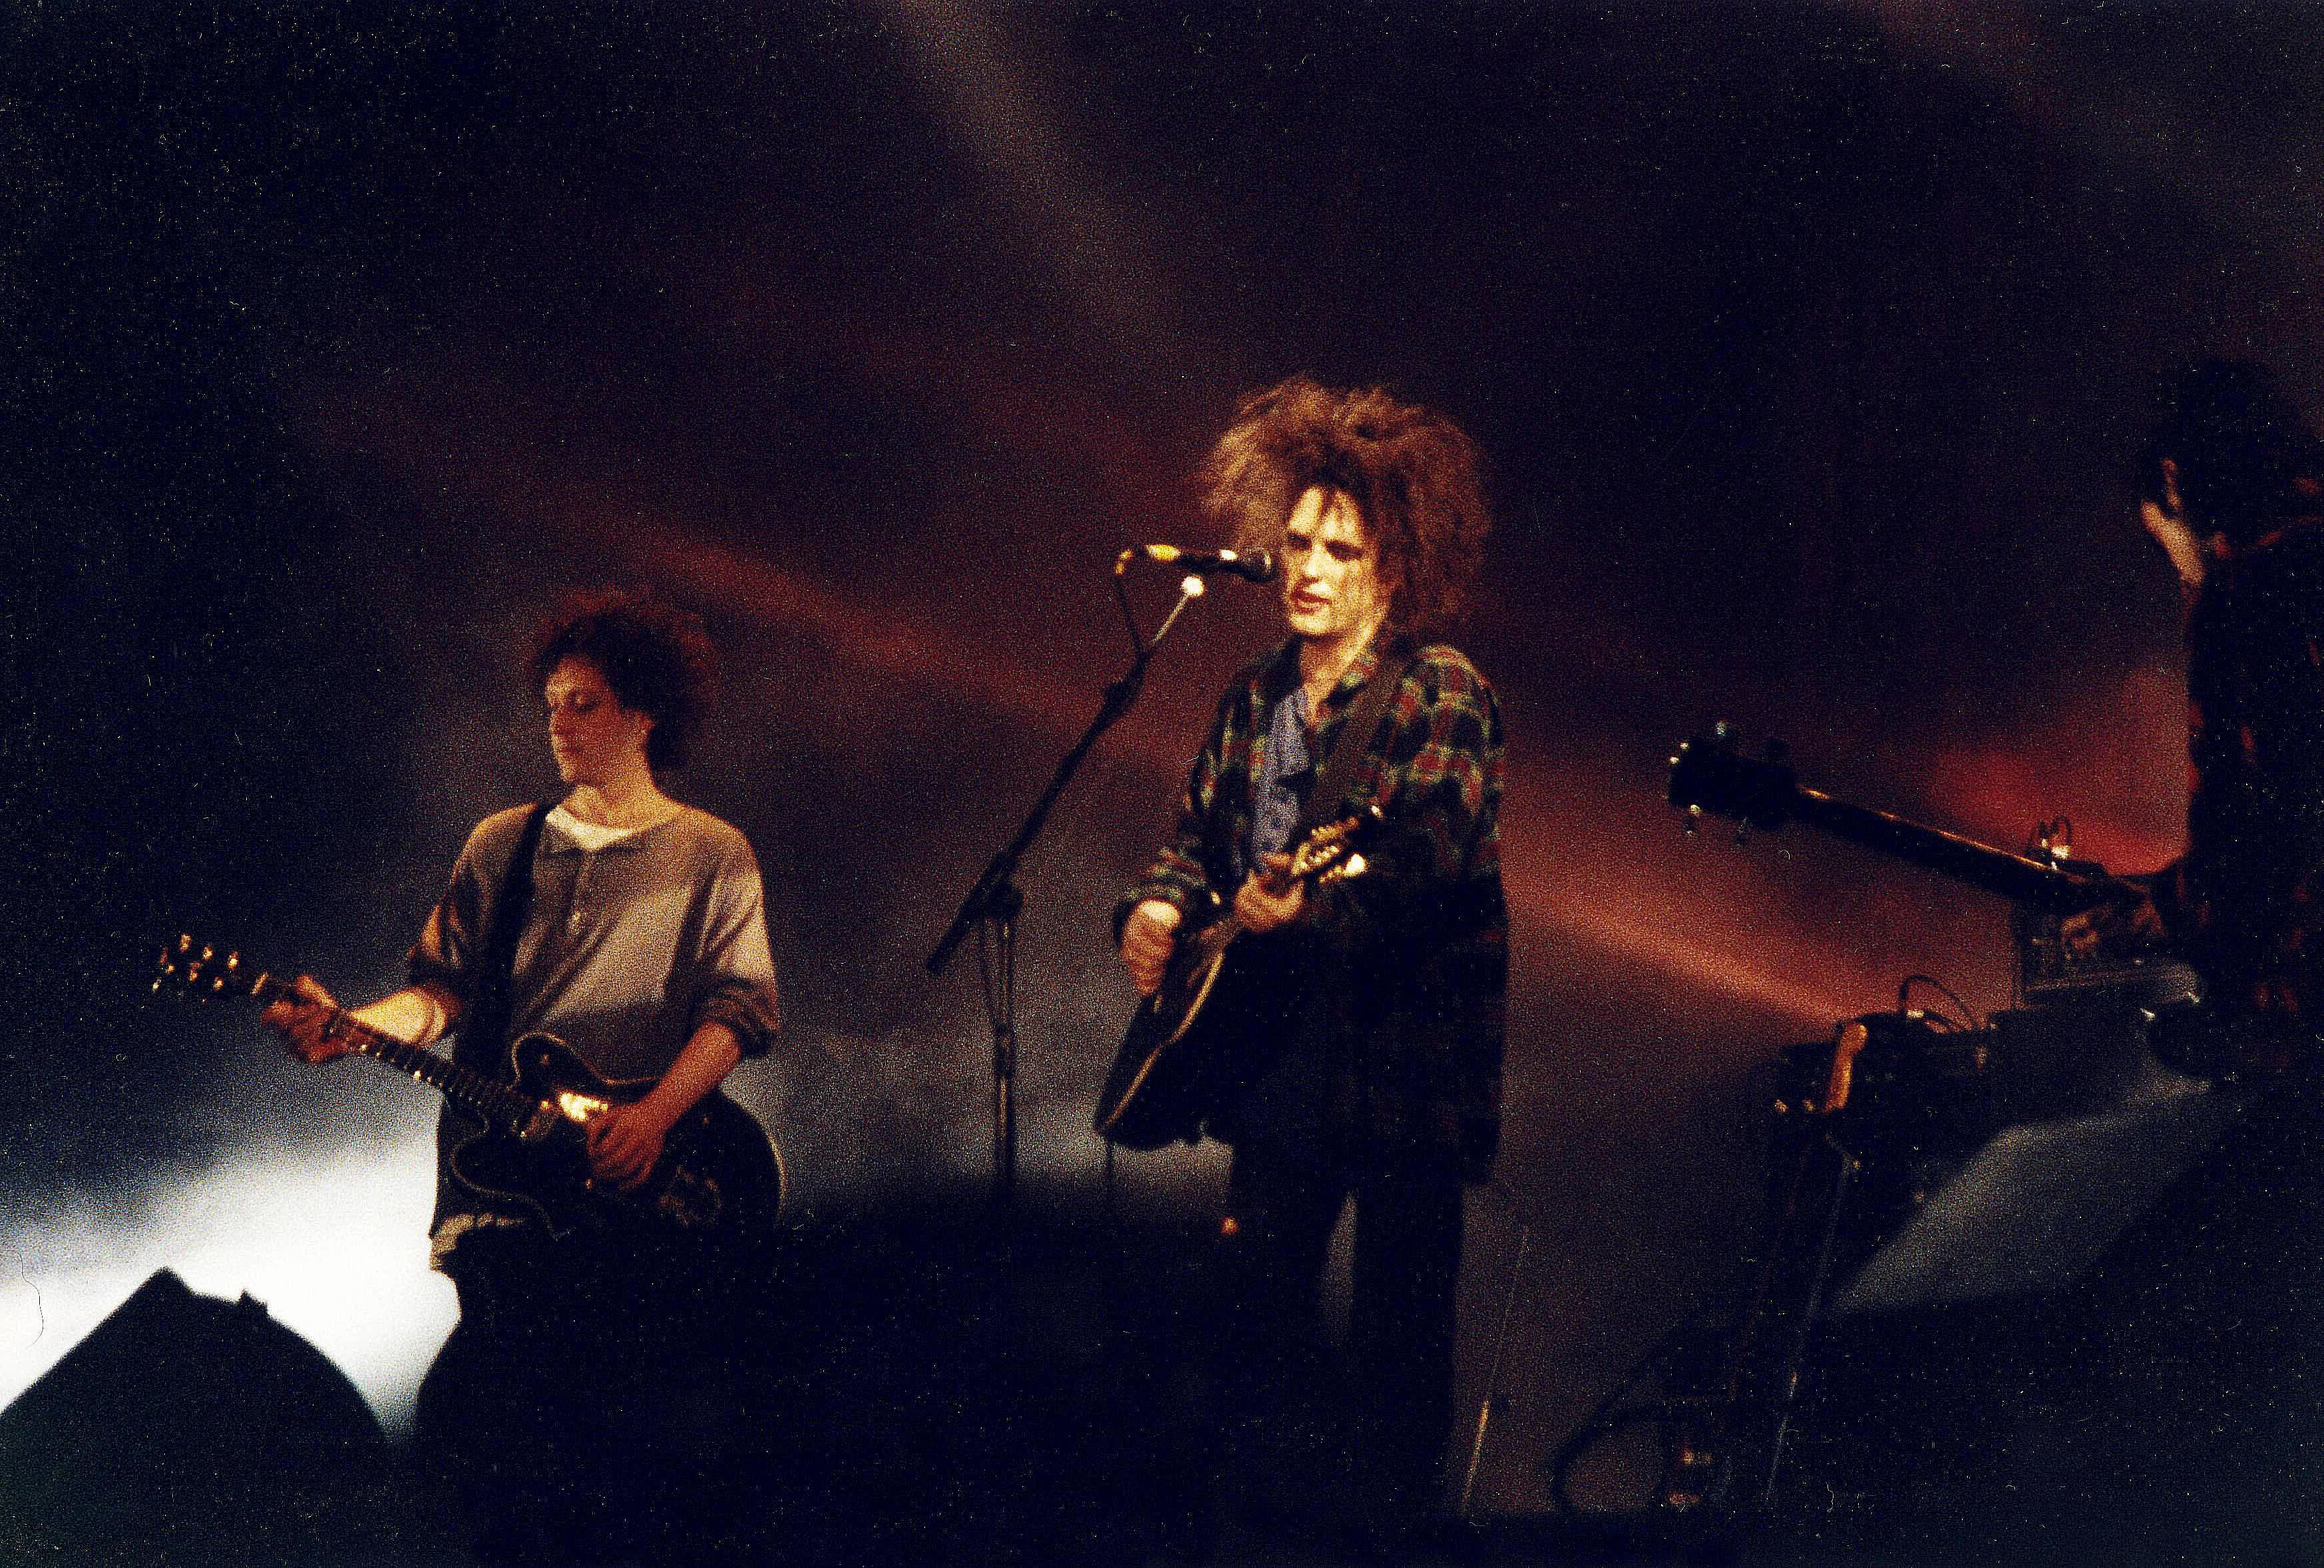 Led memorably by distinctive frontman Robert Smith (center), English alternative band The Cure performs live during the early '90s.